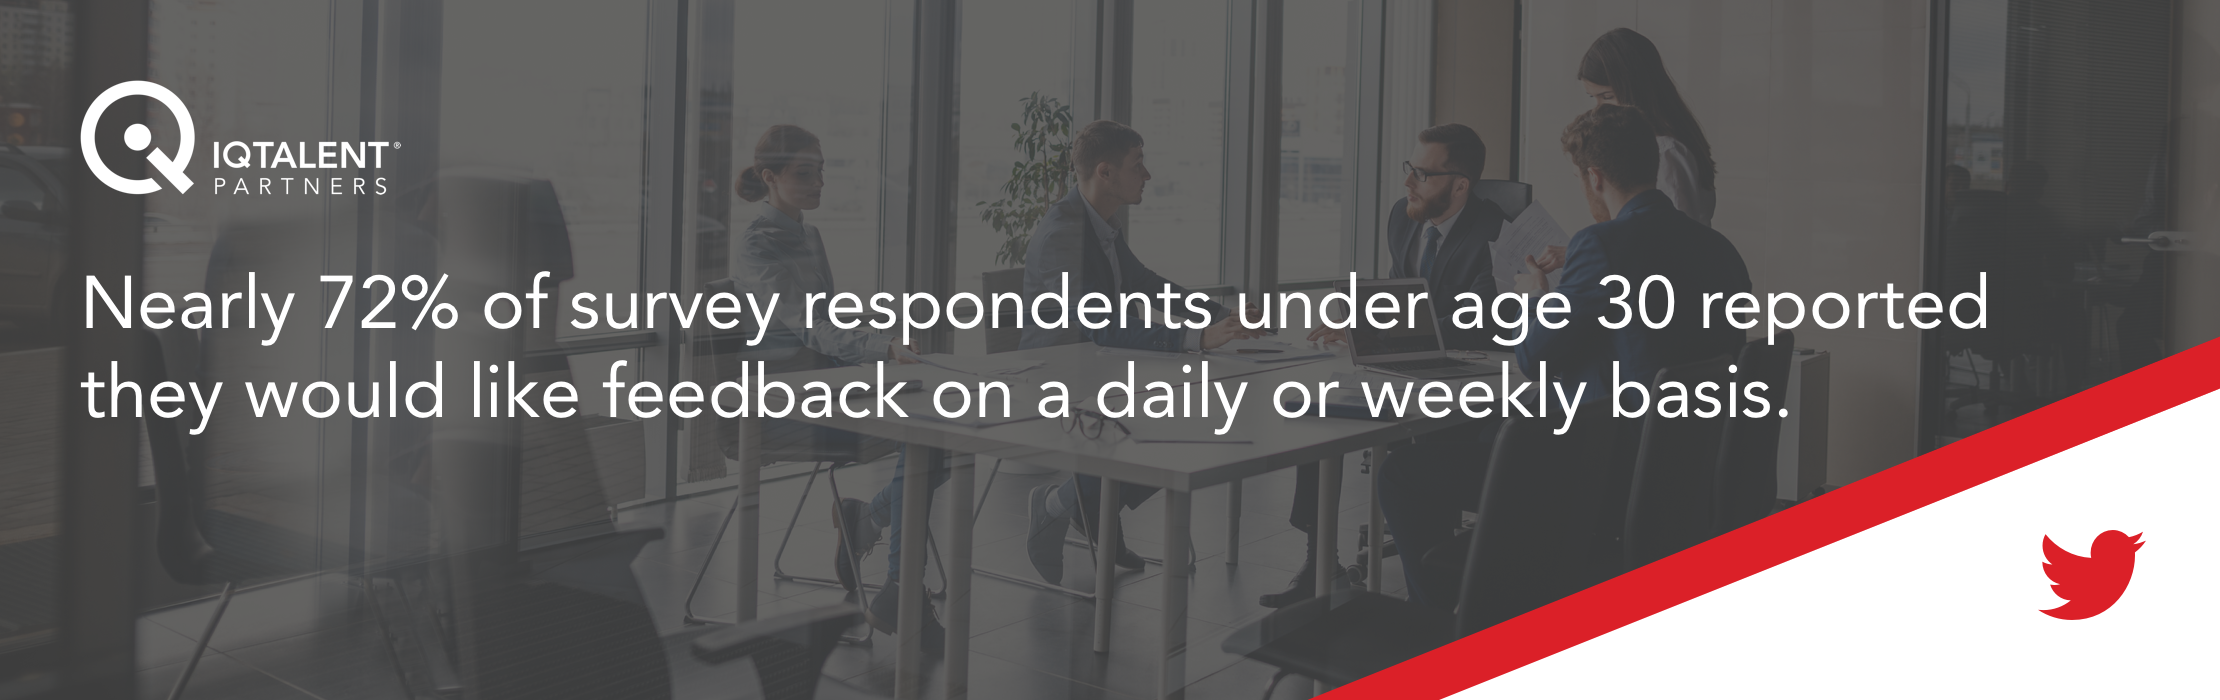 Nearly 72% of survey respondents under age 30 reported they would like feedback on a daily or weekly basis.